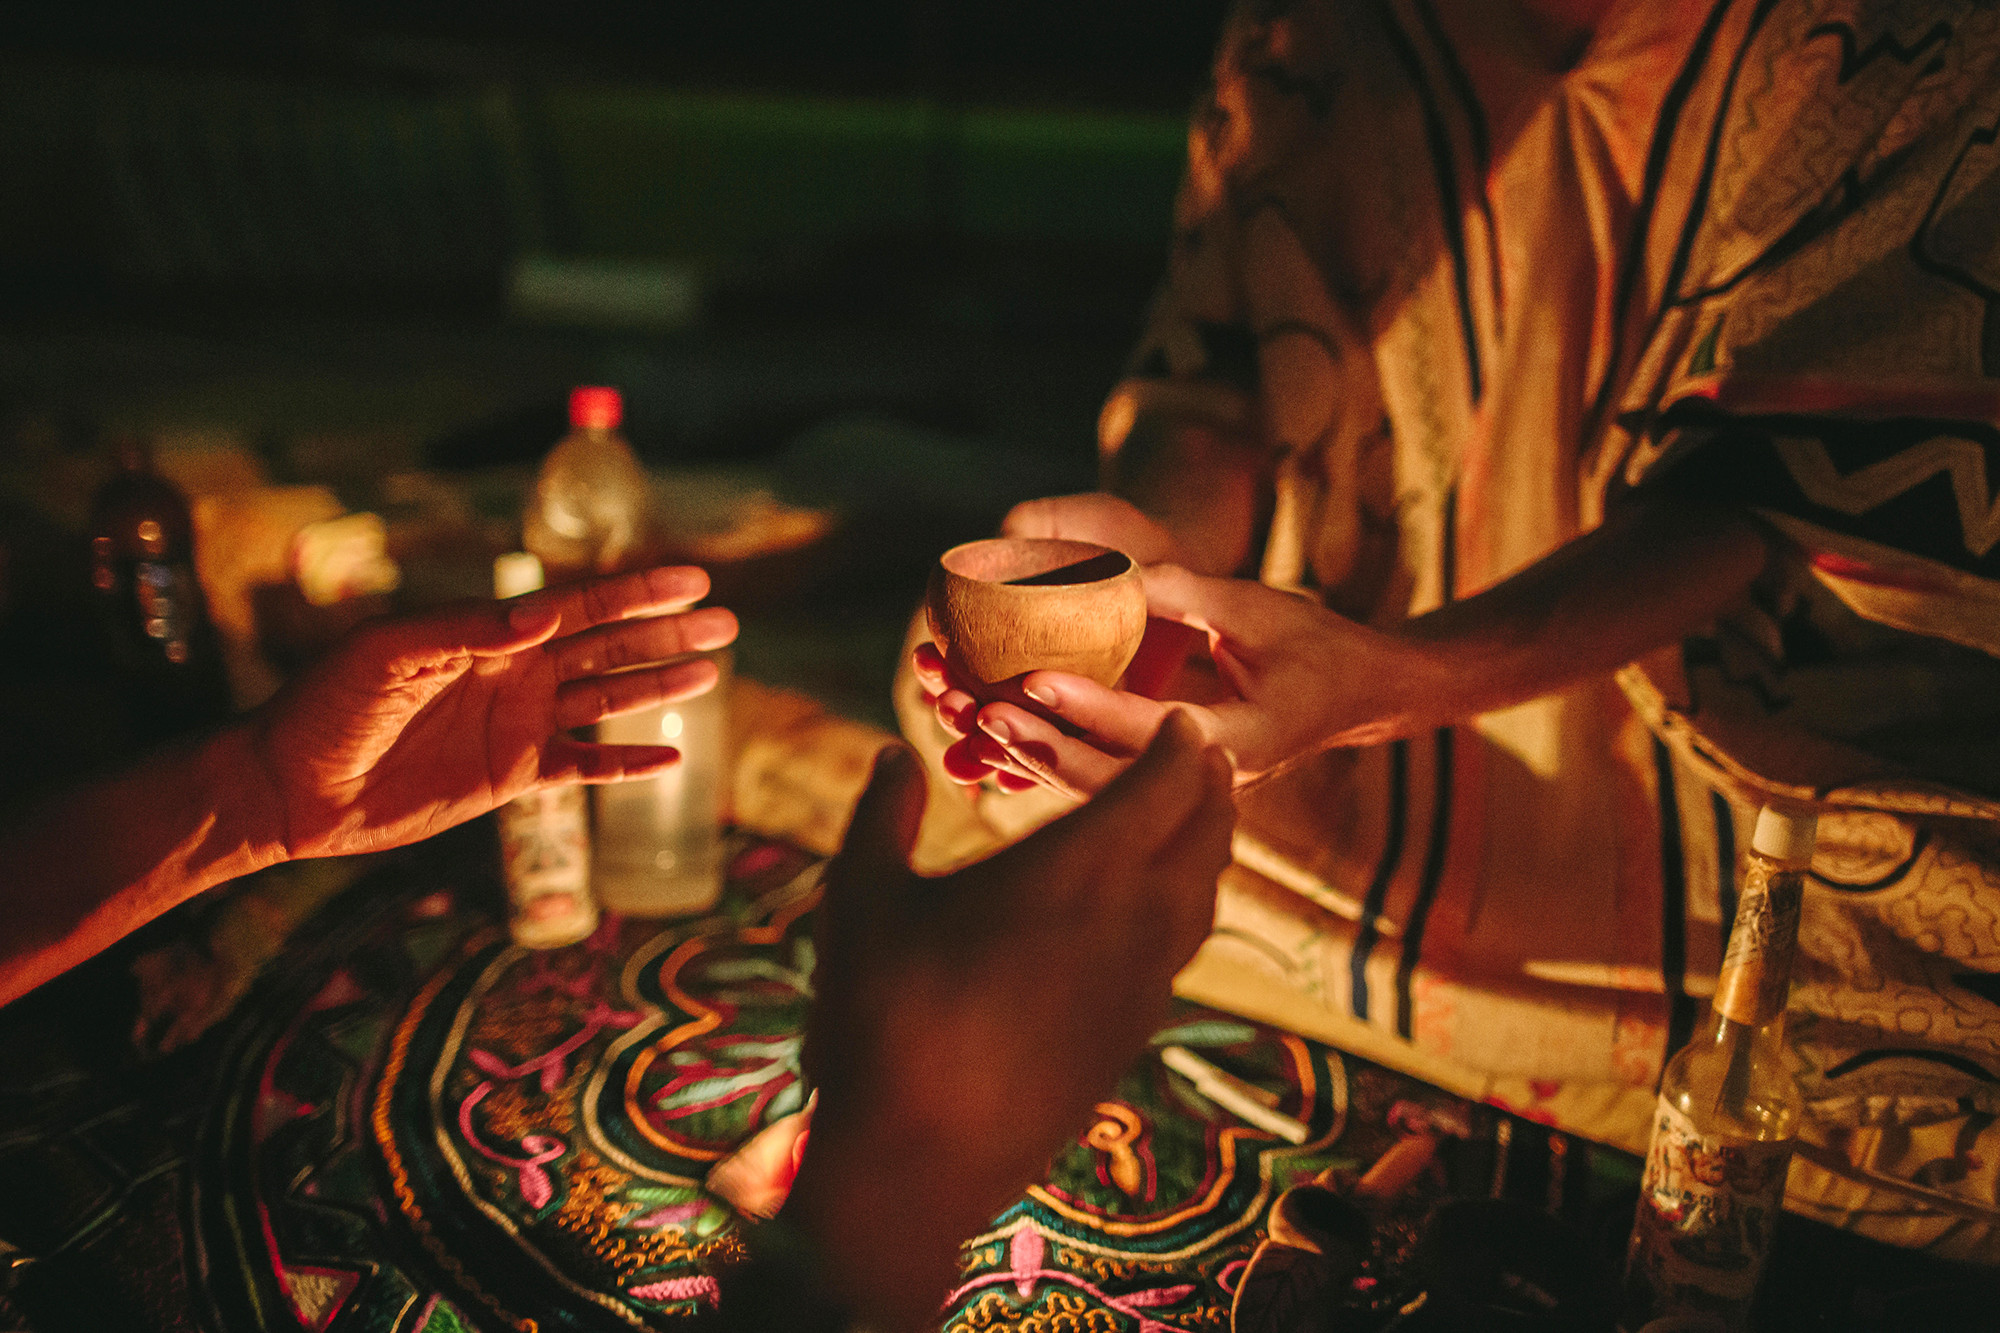 Gospel of ayahuasca: Hallucinogenic conjures up heavenly spiritual circulation